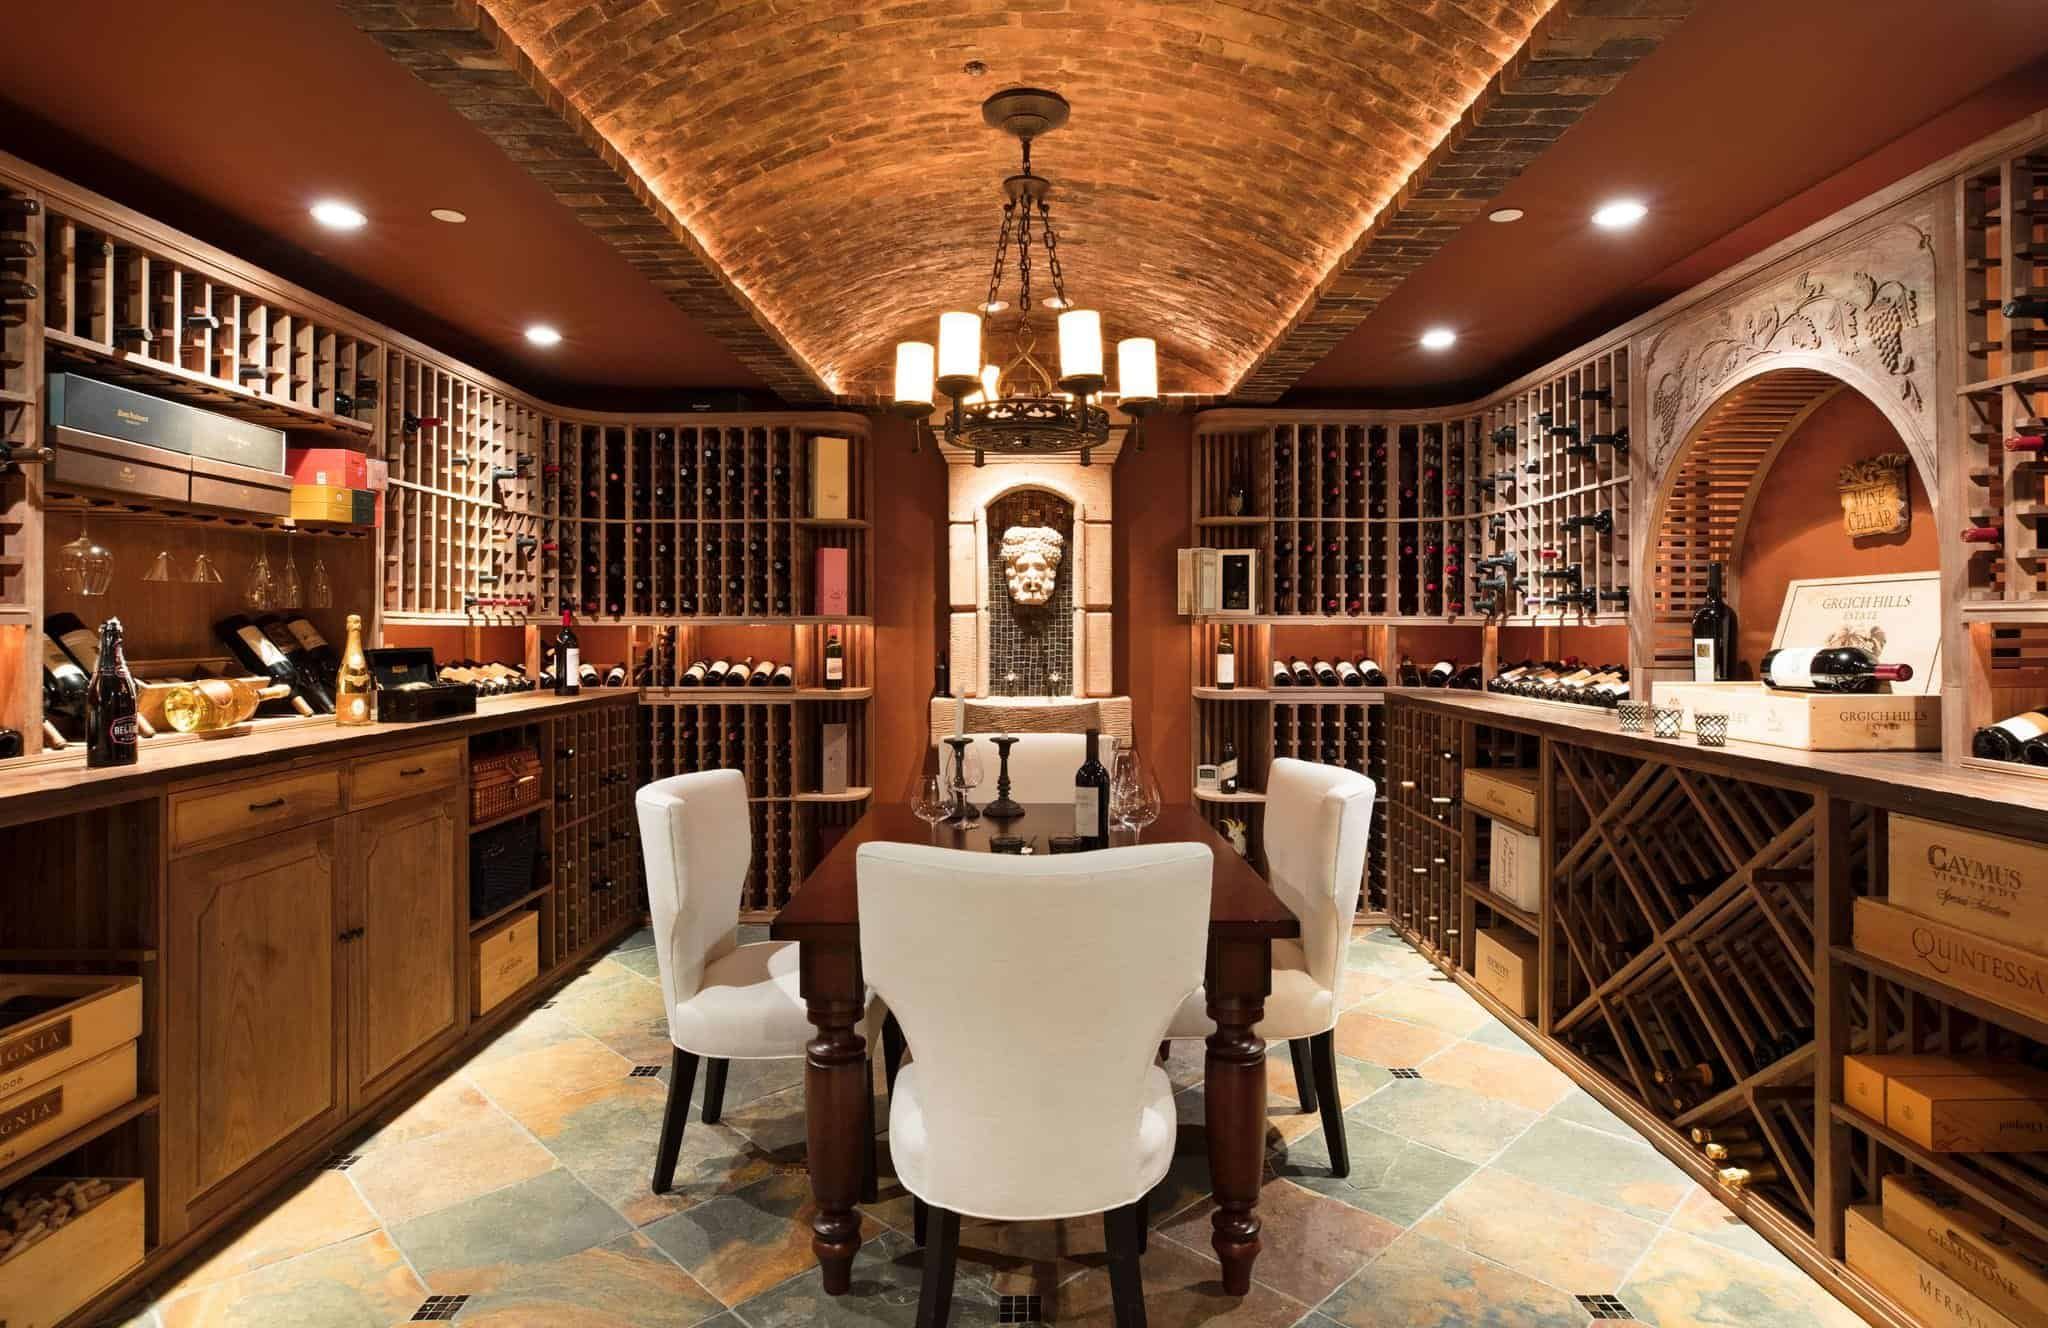 Thereu0027s Also A Huge Wine Cellar In The Mansion That Feature Bar Counters  And A Table